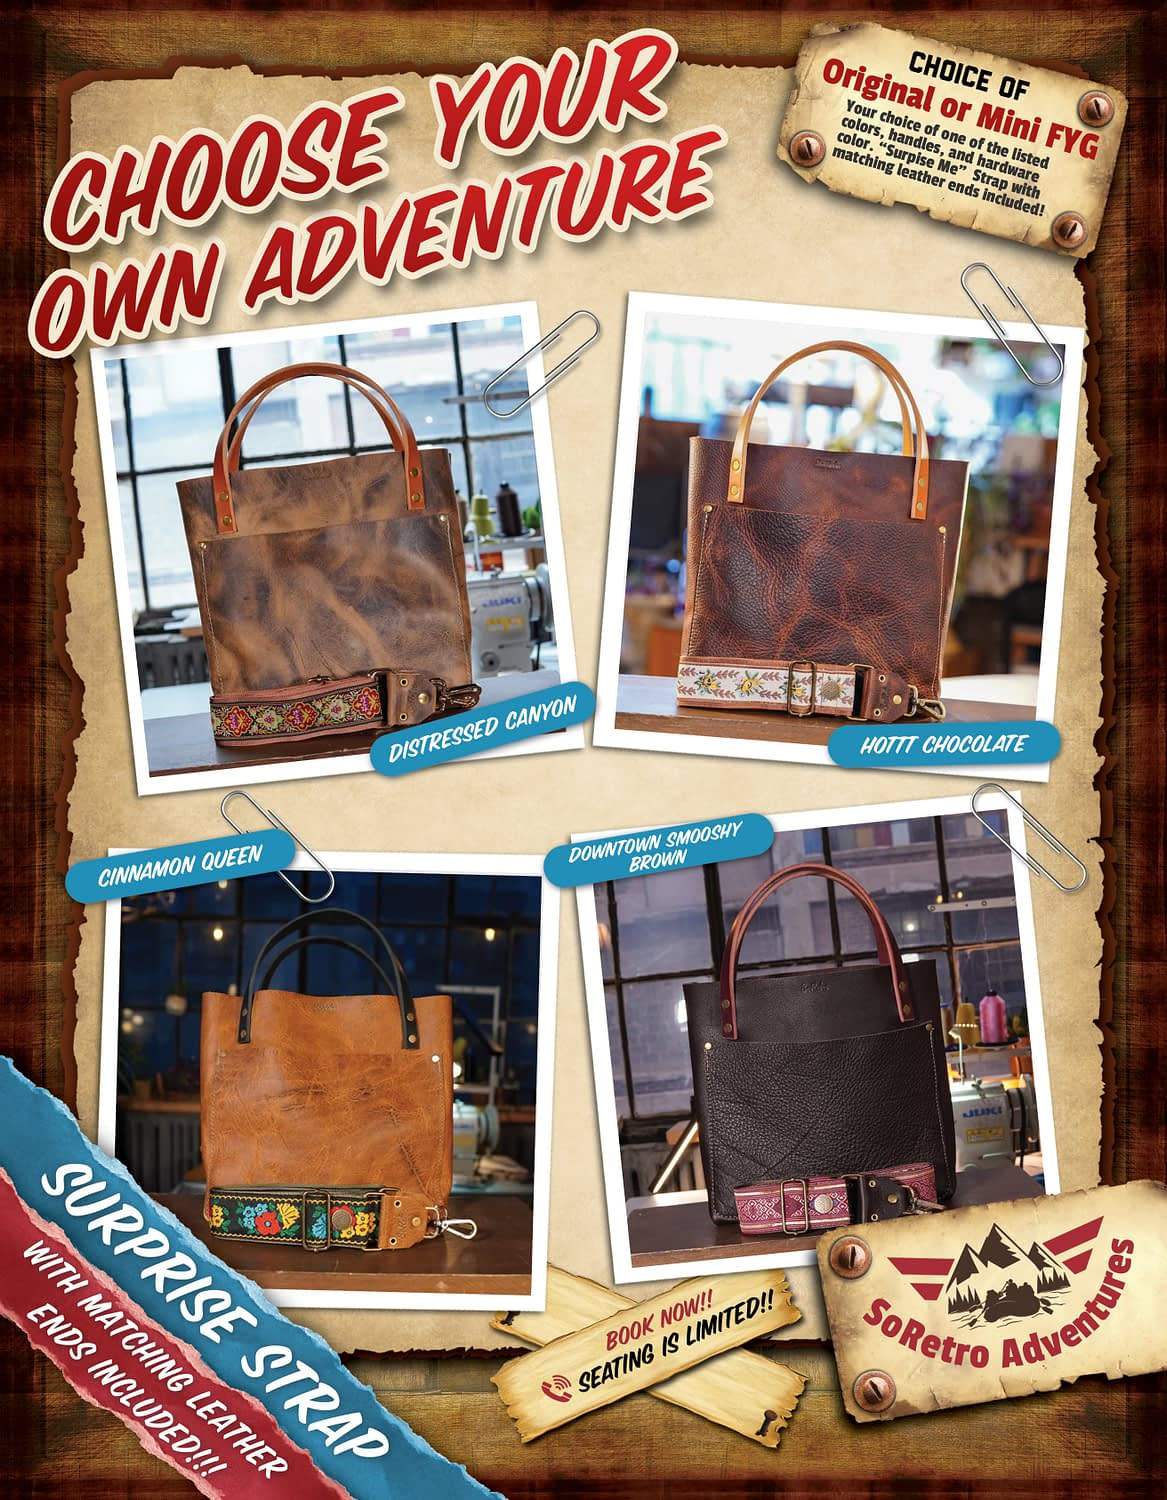 SoRetro FYG Leather Crossbody Tote – Choose Your Own Adventure!!